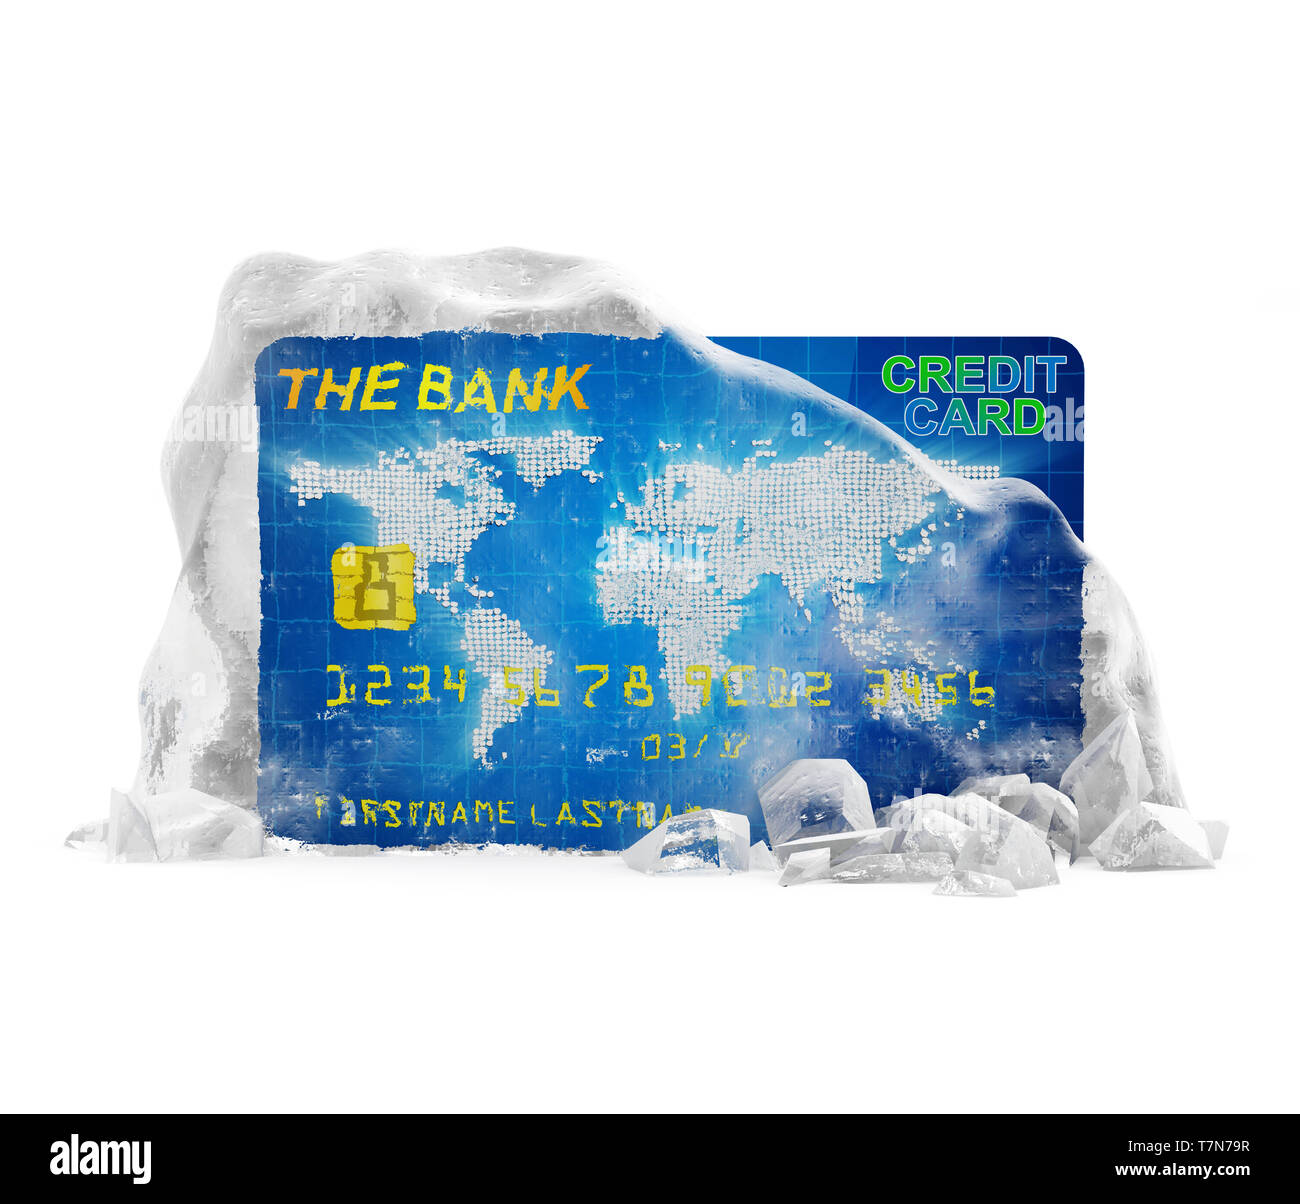 Frozen Bank Account Concept. Credit Card in Broken Solid Ice Block isolated on white background - Stock Image